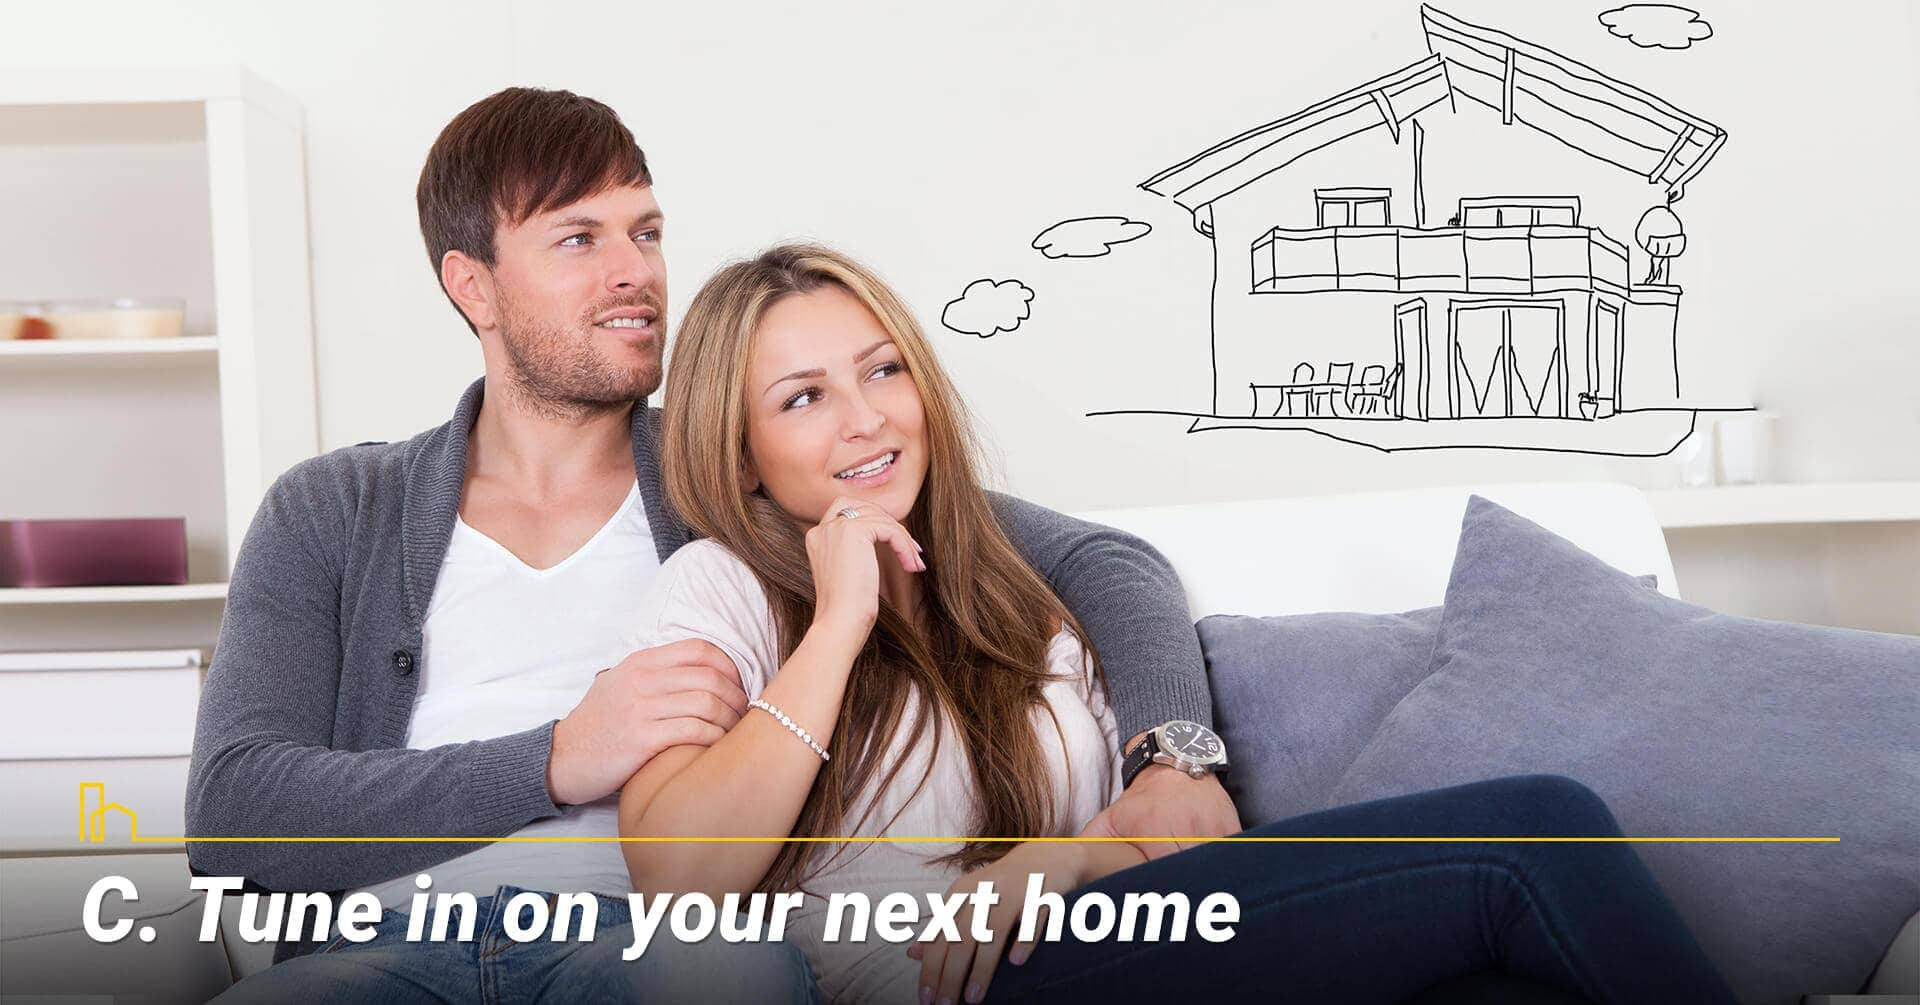 Tune in on your next home, think about your next home